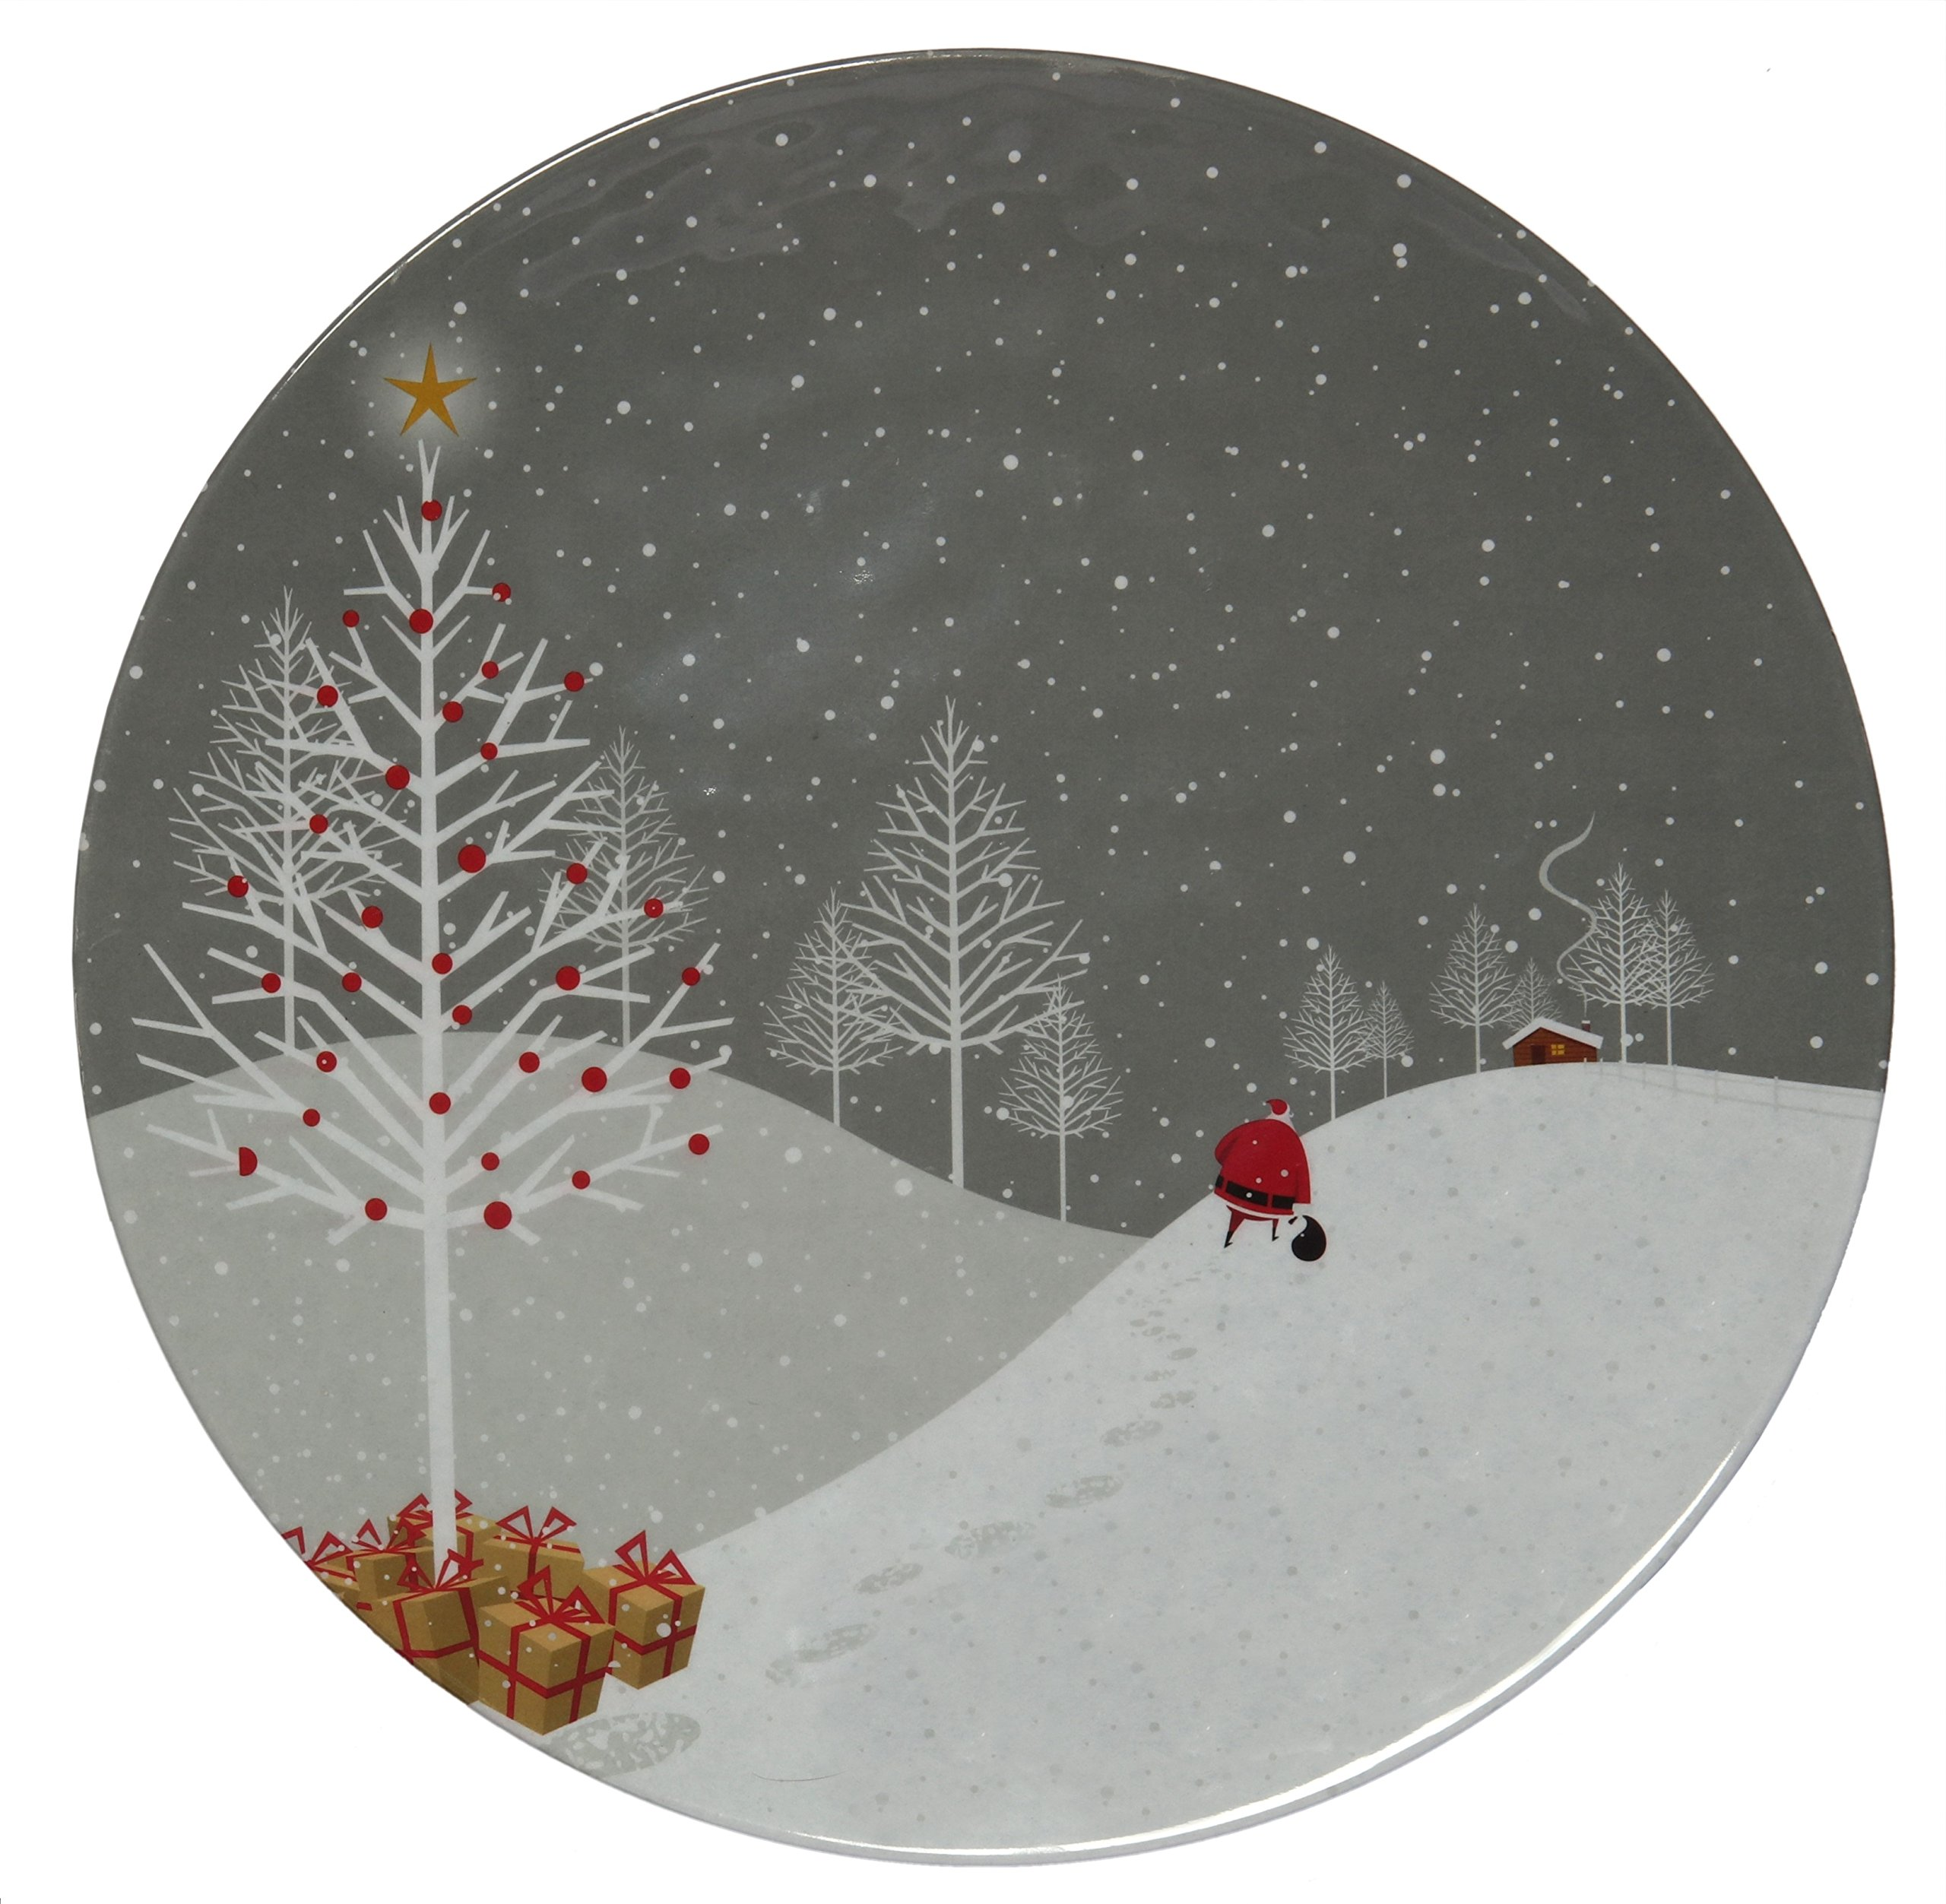 Melange 36-Piece 100% Melamine Dinner Plate Set (Santa Comes Home Collection ) | Shatter-Proof and Chip-Resistant Melamine Dinner Plates